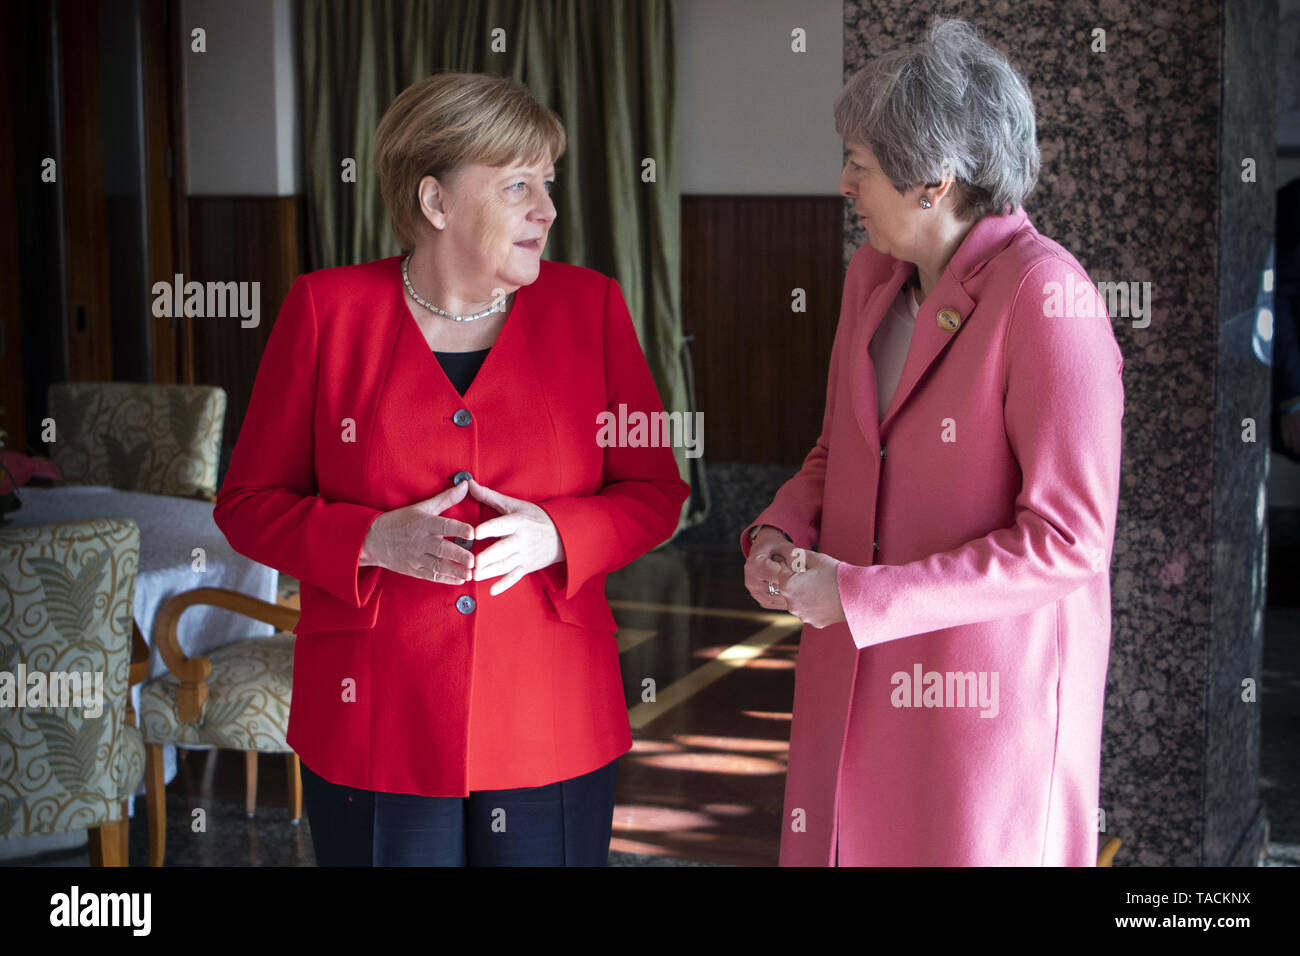 Sharm El Sheikh, Egypt. 25th Feb, 2019. German Chancellor Angela Merkel (L) meets with British Prime Minister Theresa May on the sidelines of the European Union (EU) and League of Arab States (LAS) summit. Credit: Guido Bergmann/Bundesregierung/dpa - ATTENTION: editorial use only and only if the credit mentioned above is referenced in full | usage worldwide/dpa/Alamy Live News - Stock Image